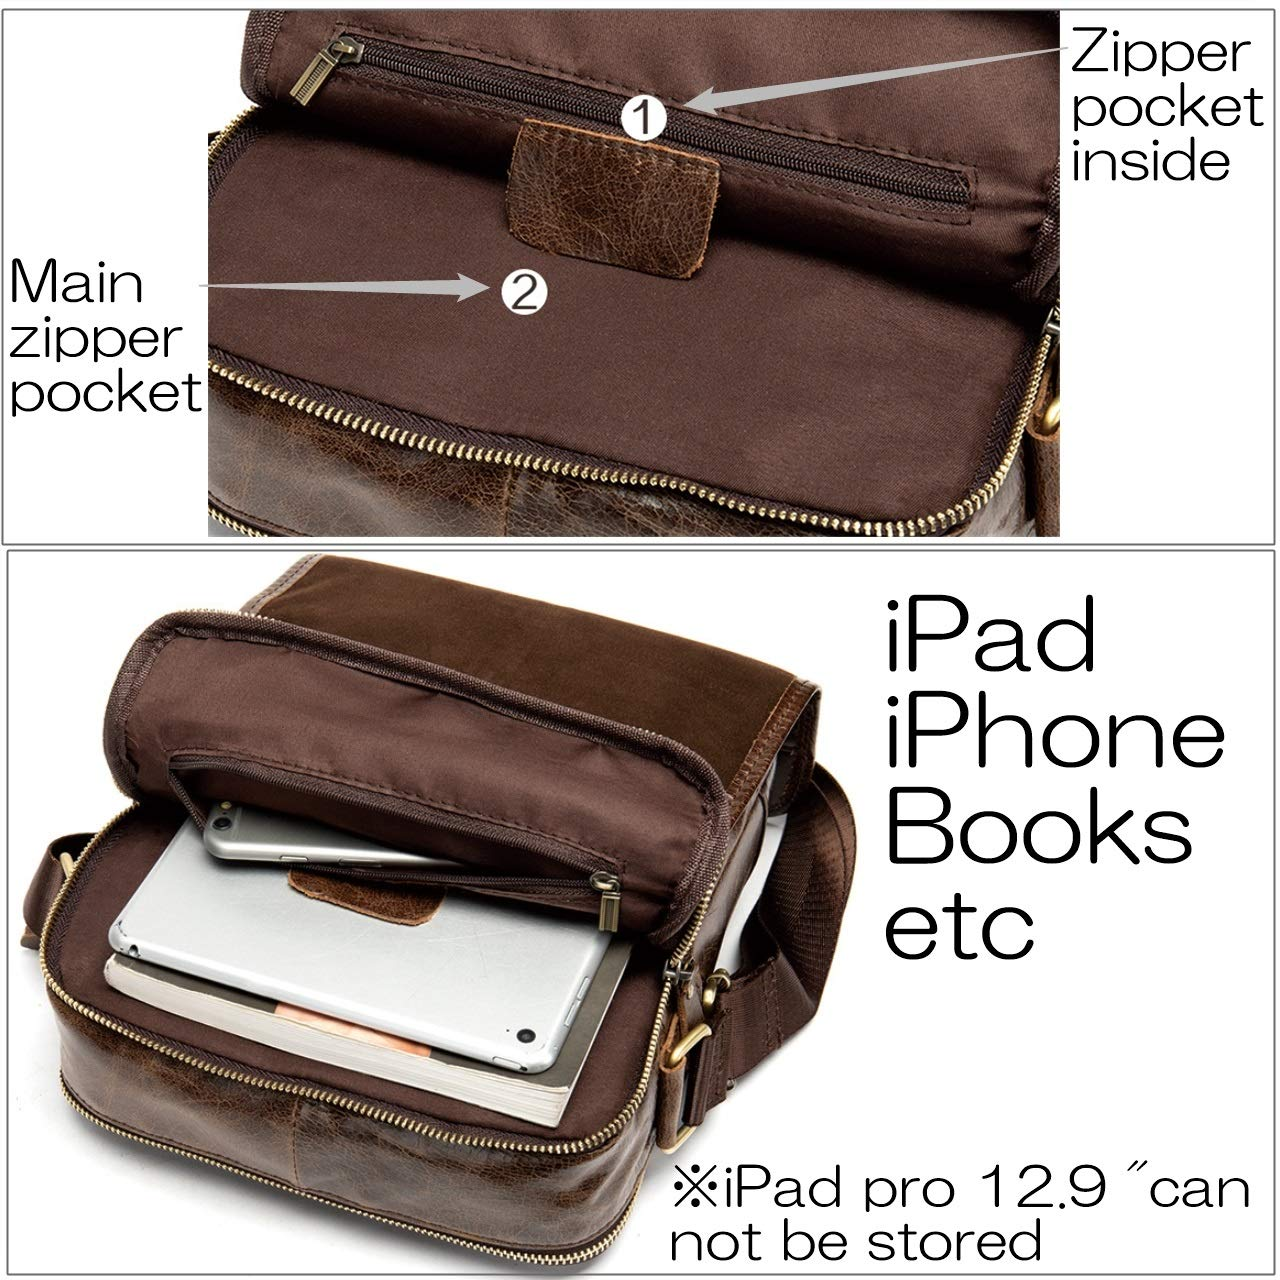 Vintage Mens Small Messenger Bags for iPad Tablet Contyu Genuine Leather Shoulder Bag for men Light brown Flap over Classic Crossbody Purse for Travel